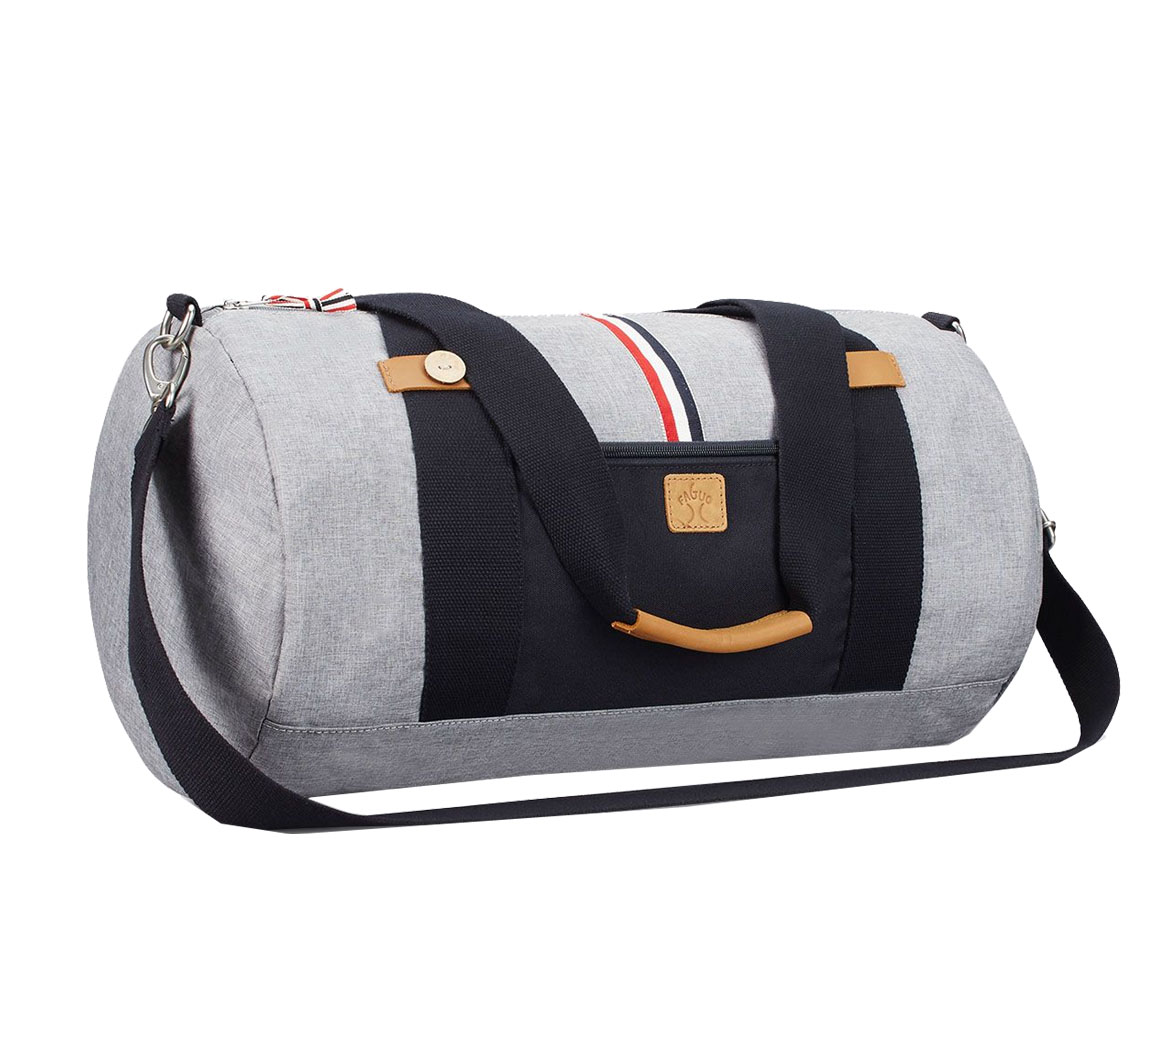 Grand sac de sport souple Big Duffle 09